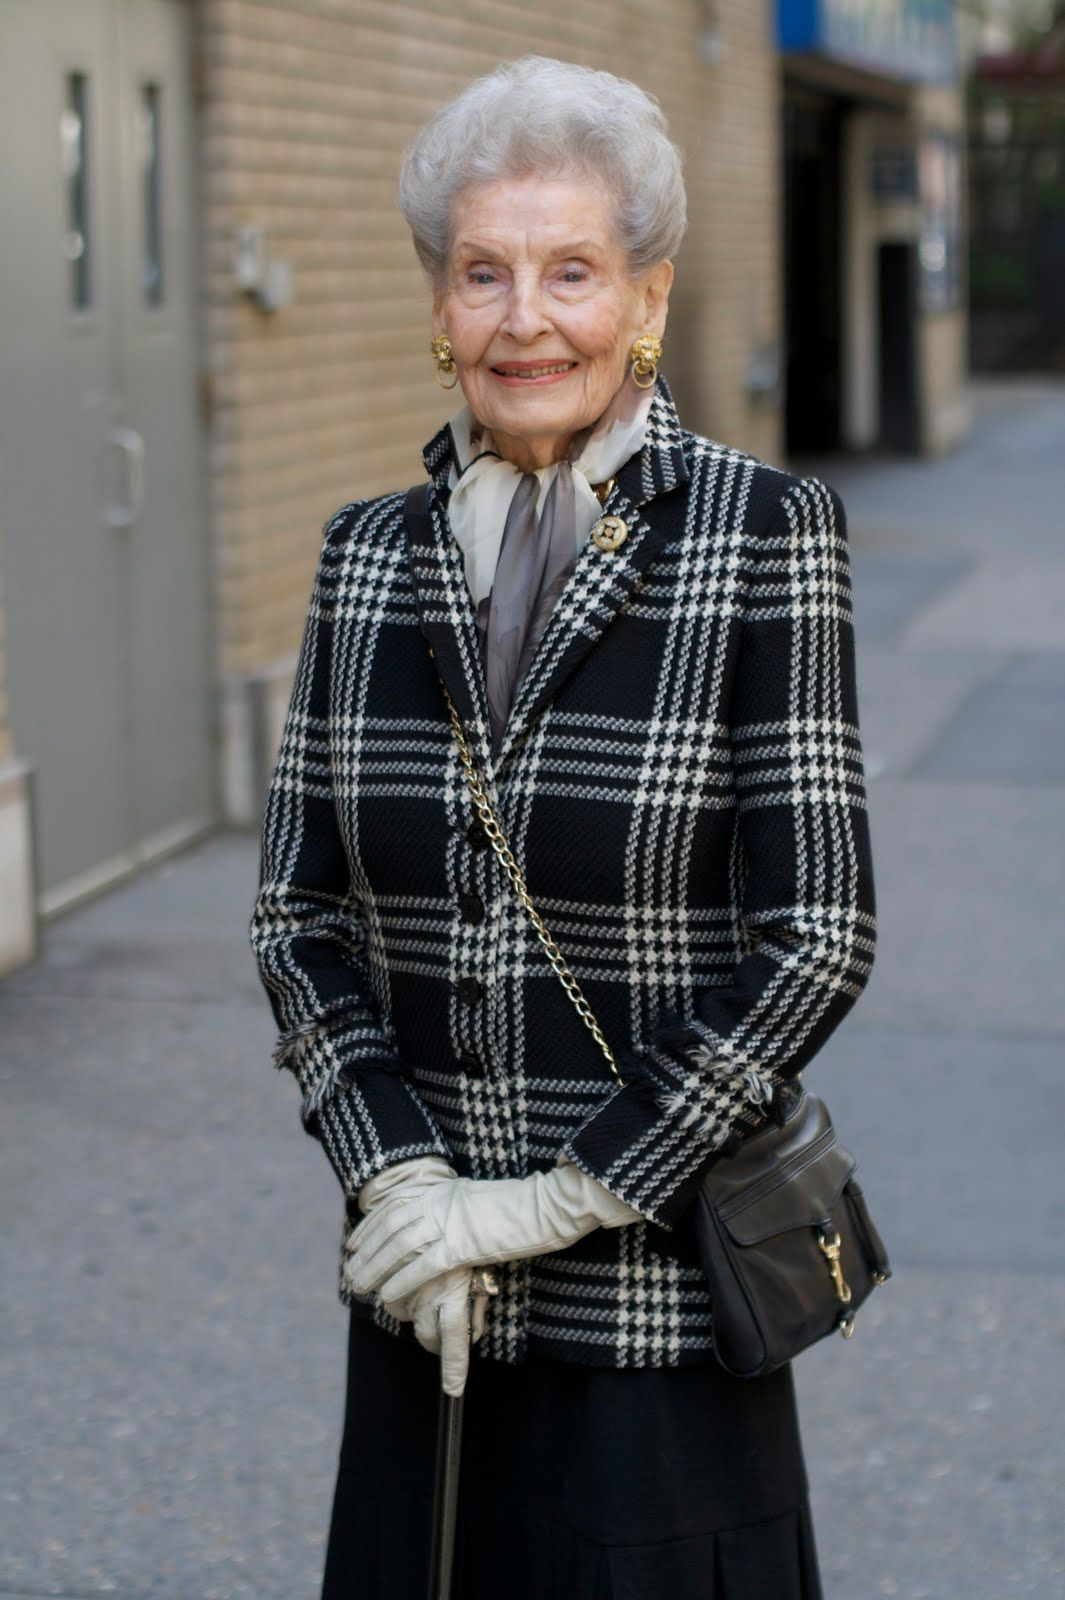 ADVANCED STYLE: Advanced Style Profile of a 100 Year Old Lady - ADVANCED STYLE: Advanced Style Profile Of A 100 Year Old Lady